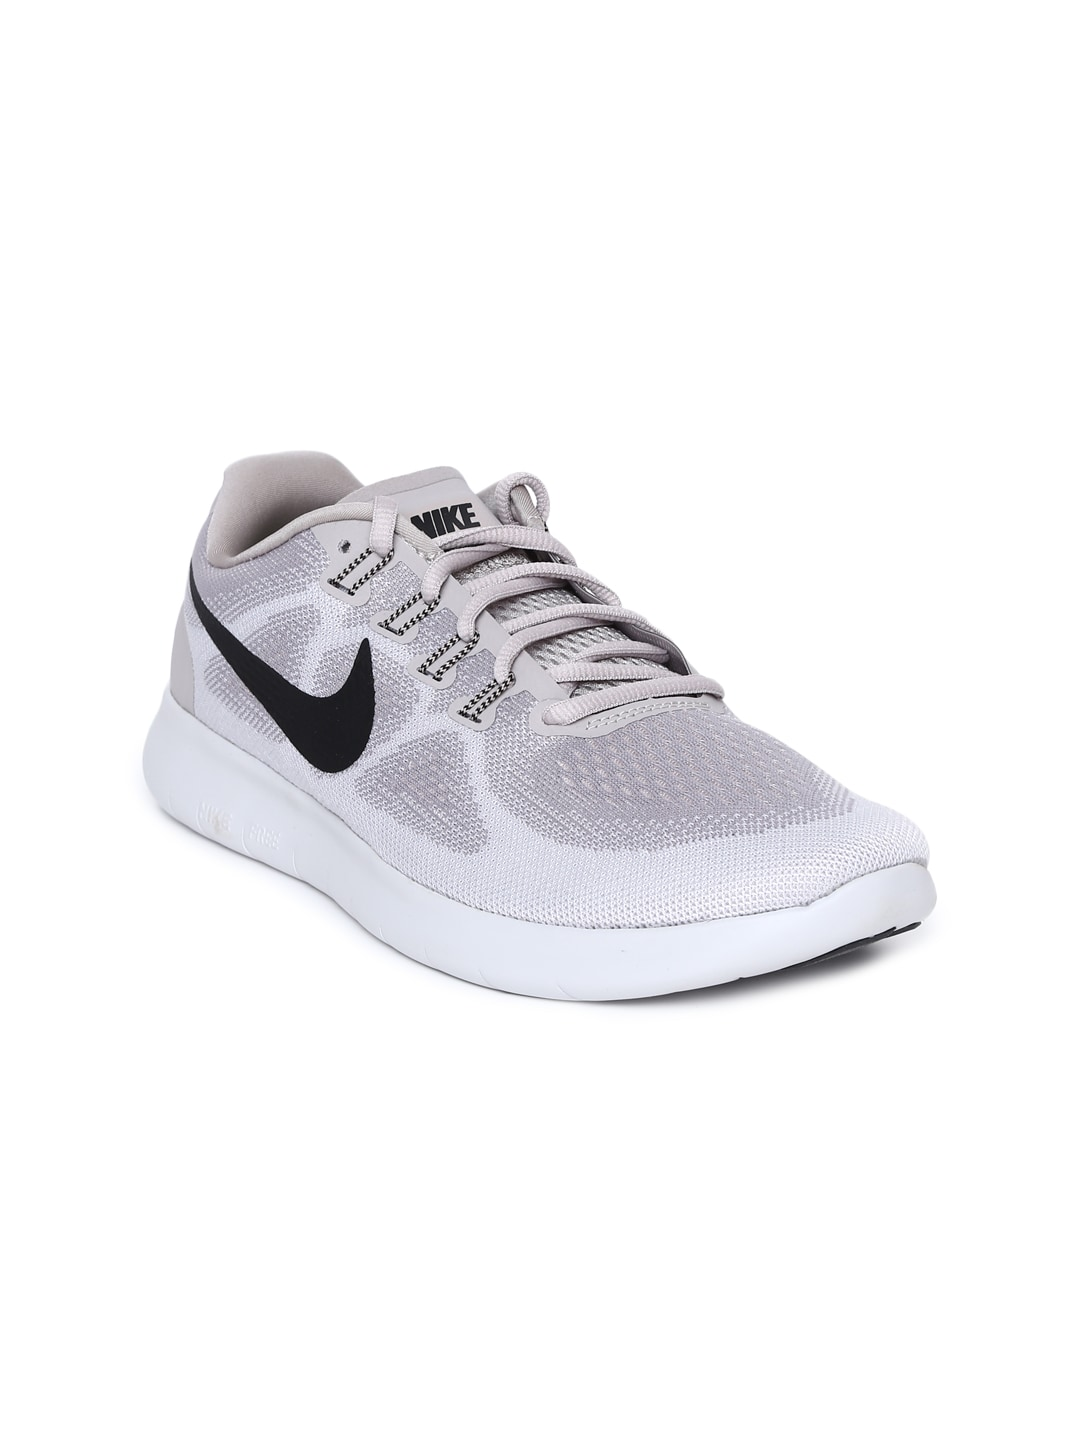 ef5c43fe47fb Nike Sport Shoe - Buy Nike Sport Shoes At Best Price Online